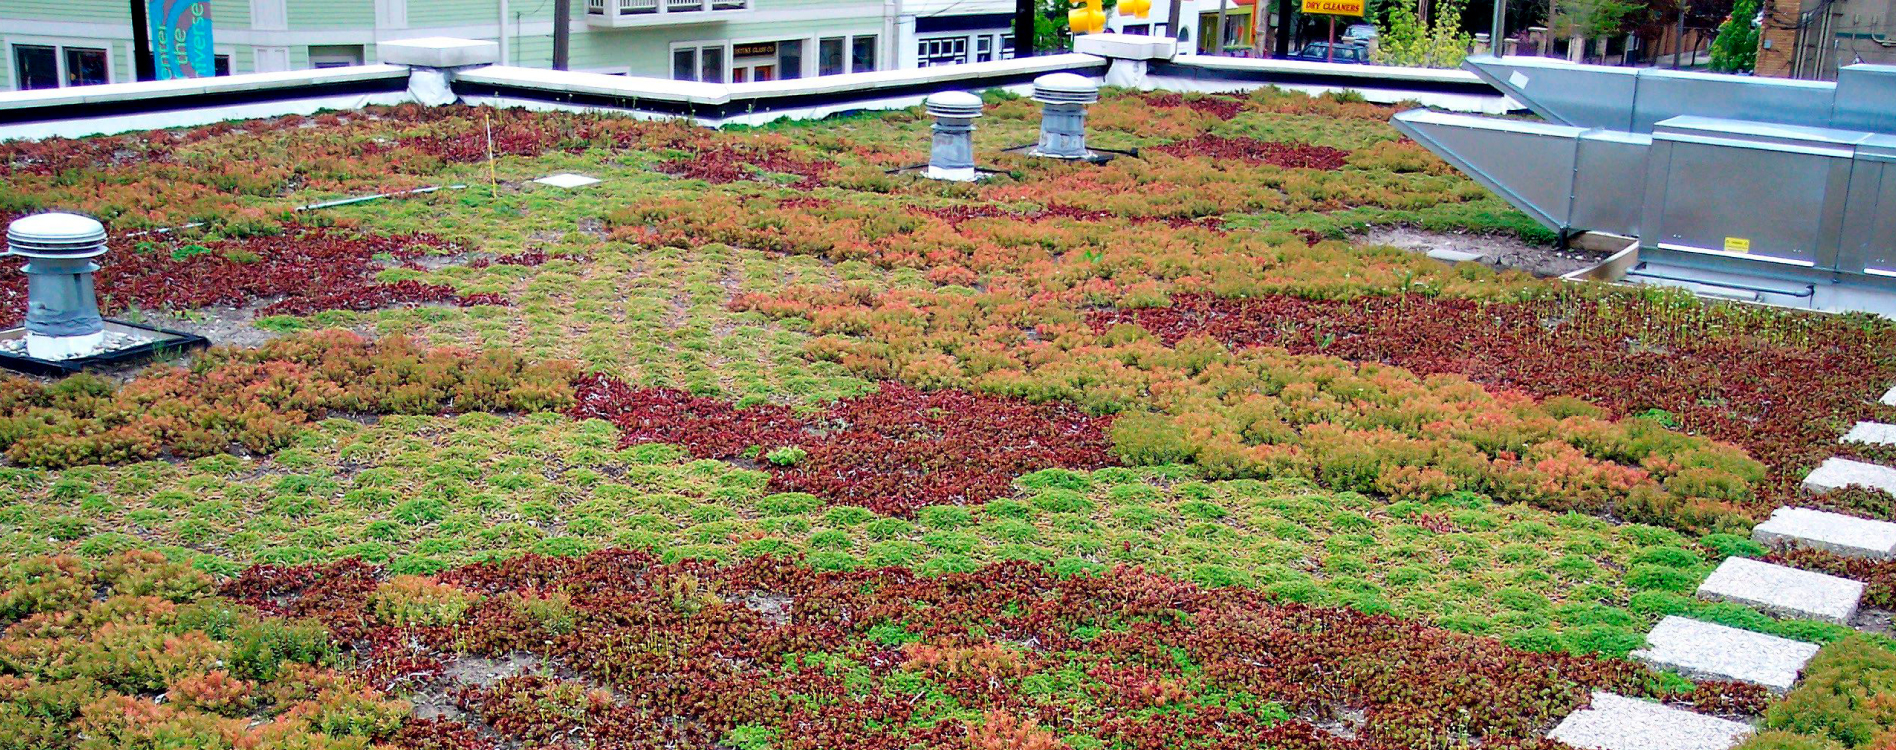 Planting a living green roof green home guide for Green home guide